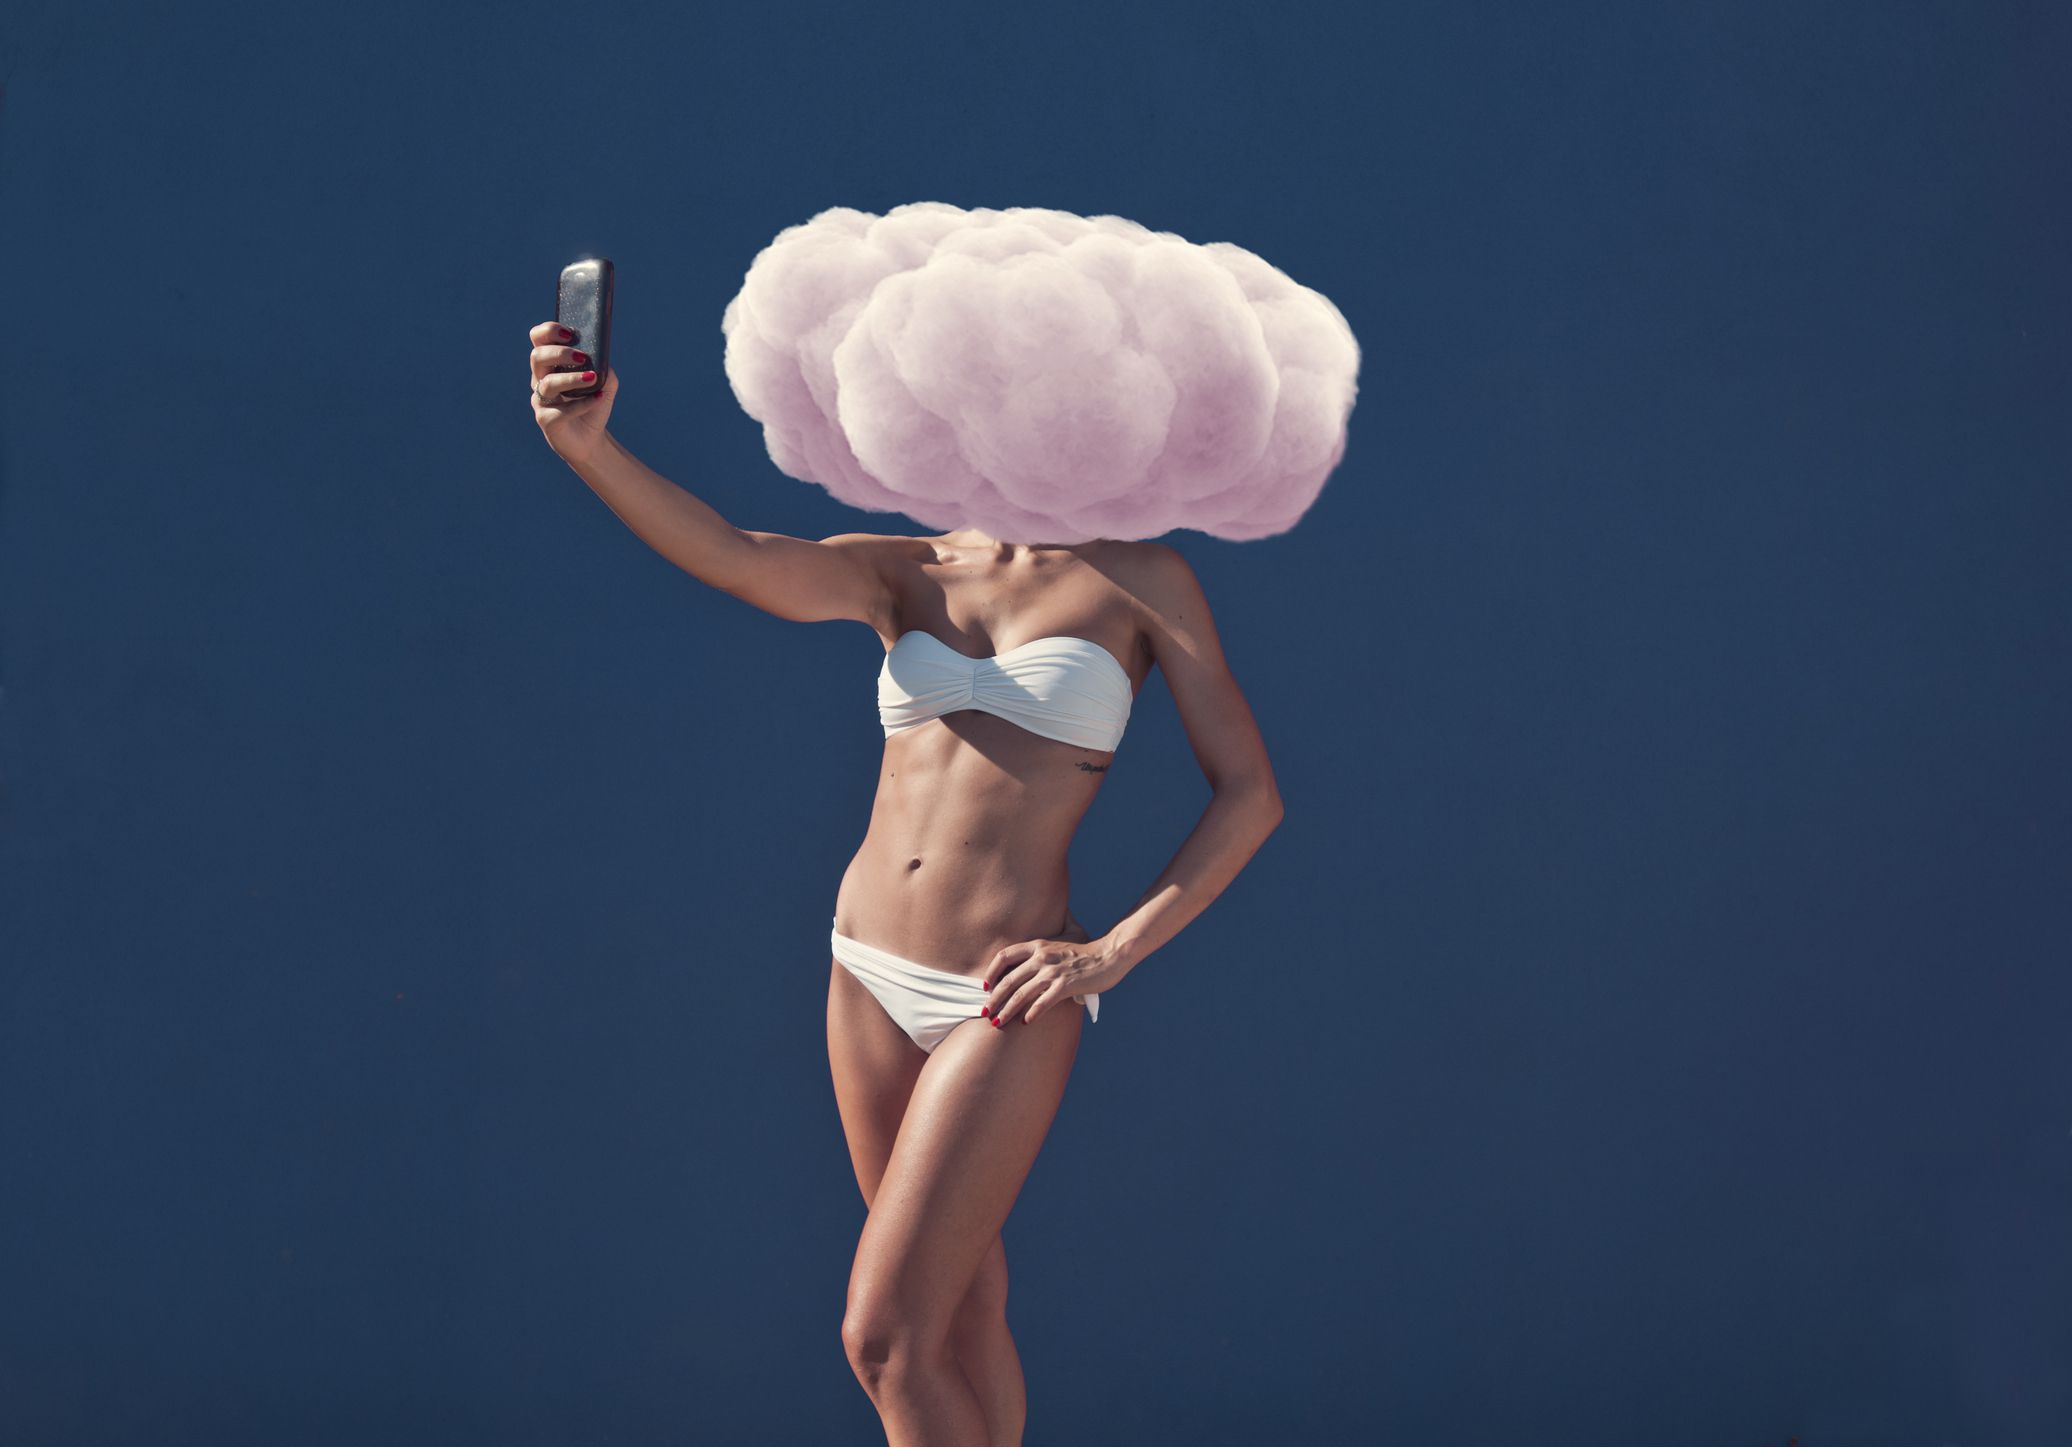 A woman taking a selfie with a pink cloud in front of her head